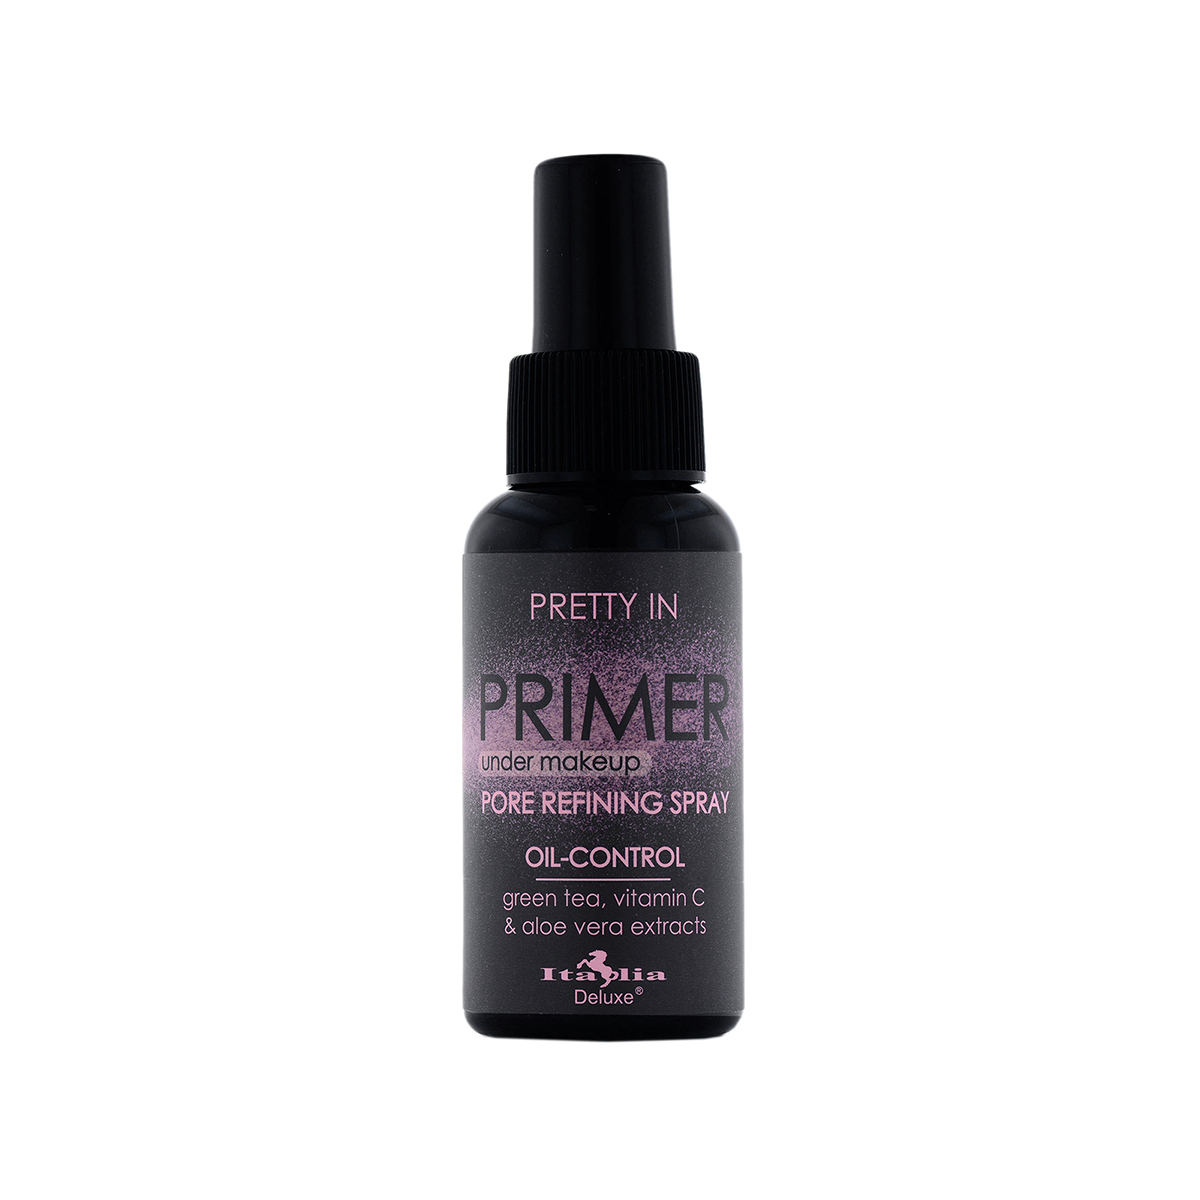 Pretty in Primer Spray - Oil-Control